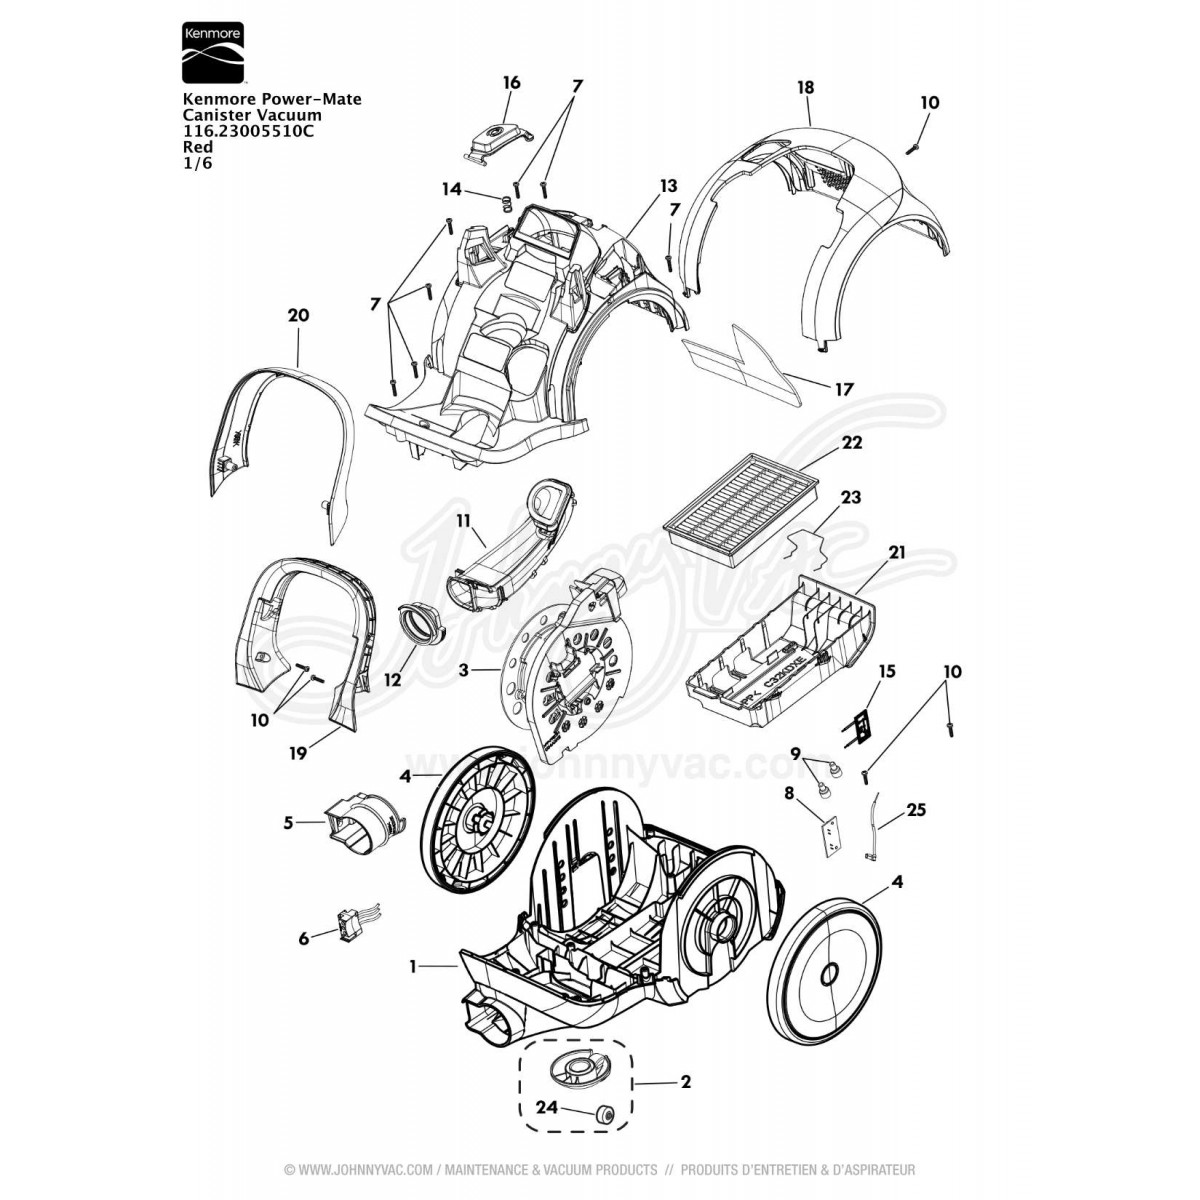 Kenmore Canister Vacuum Cleaner Sears Wiring Diagram